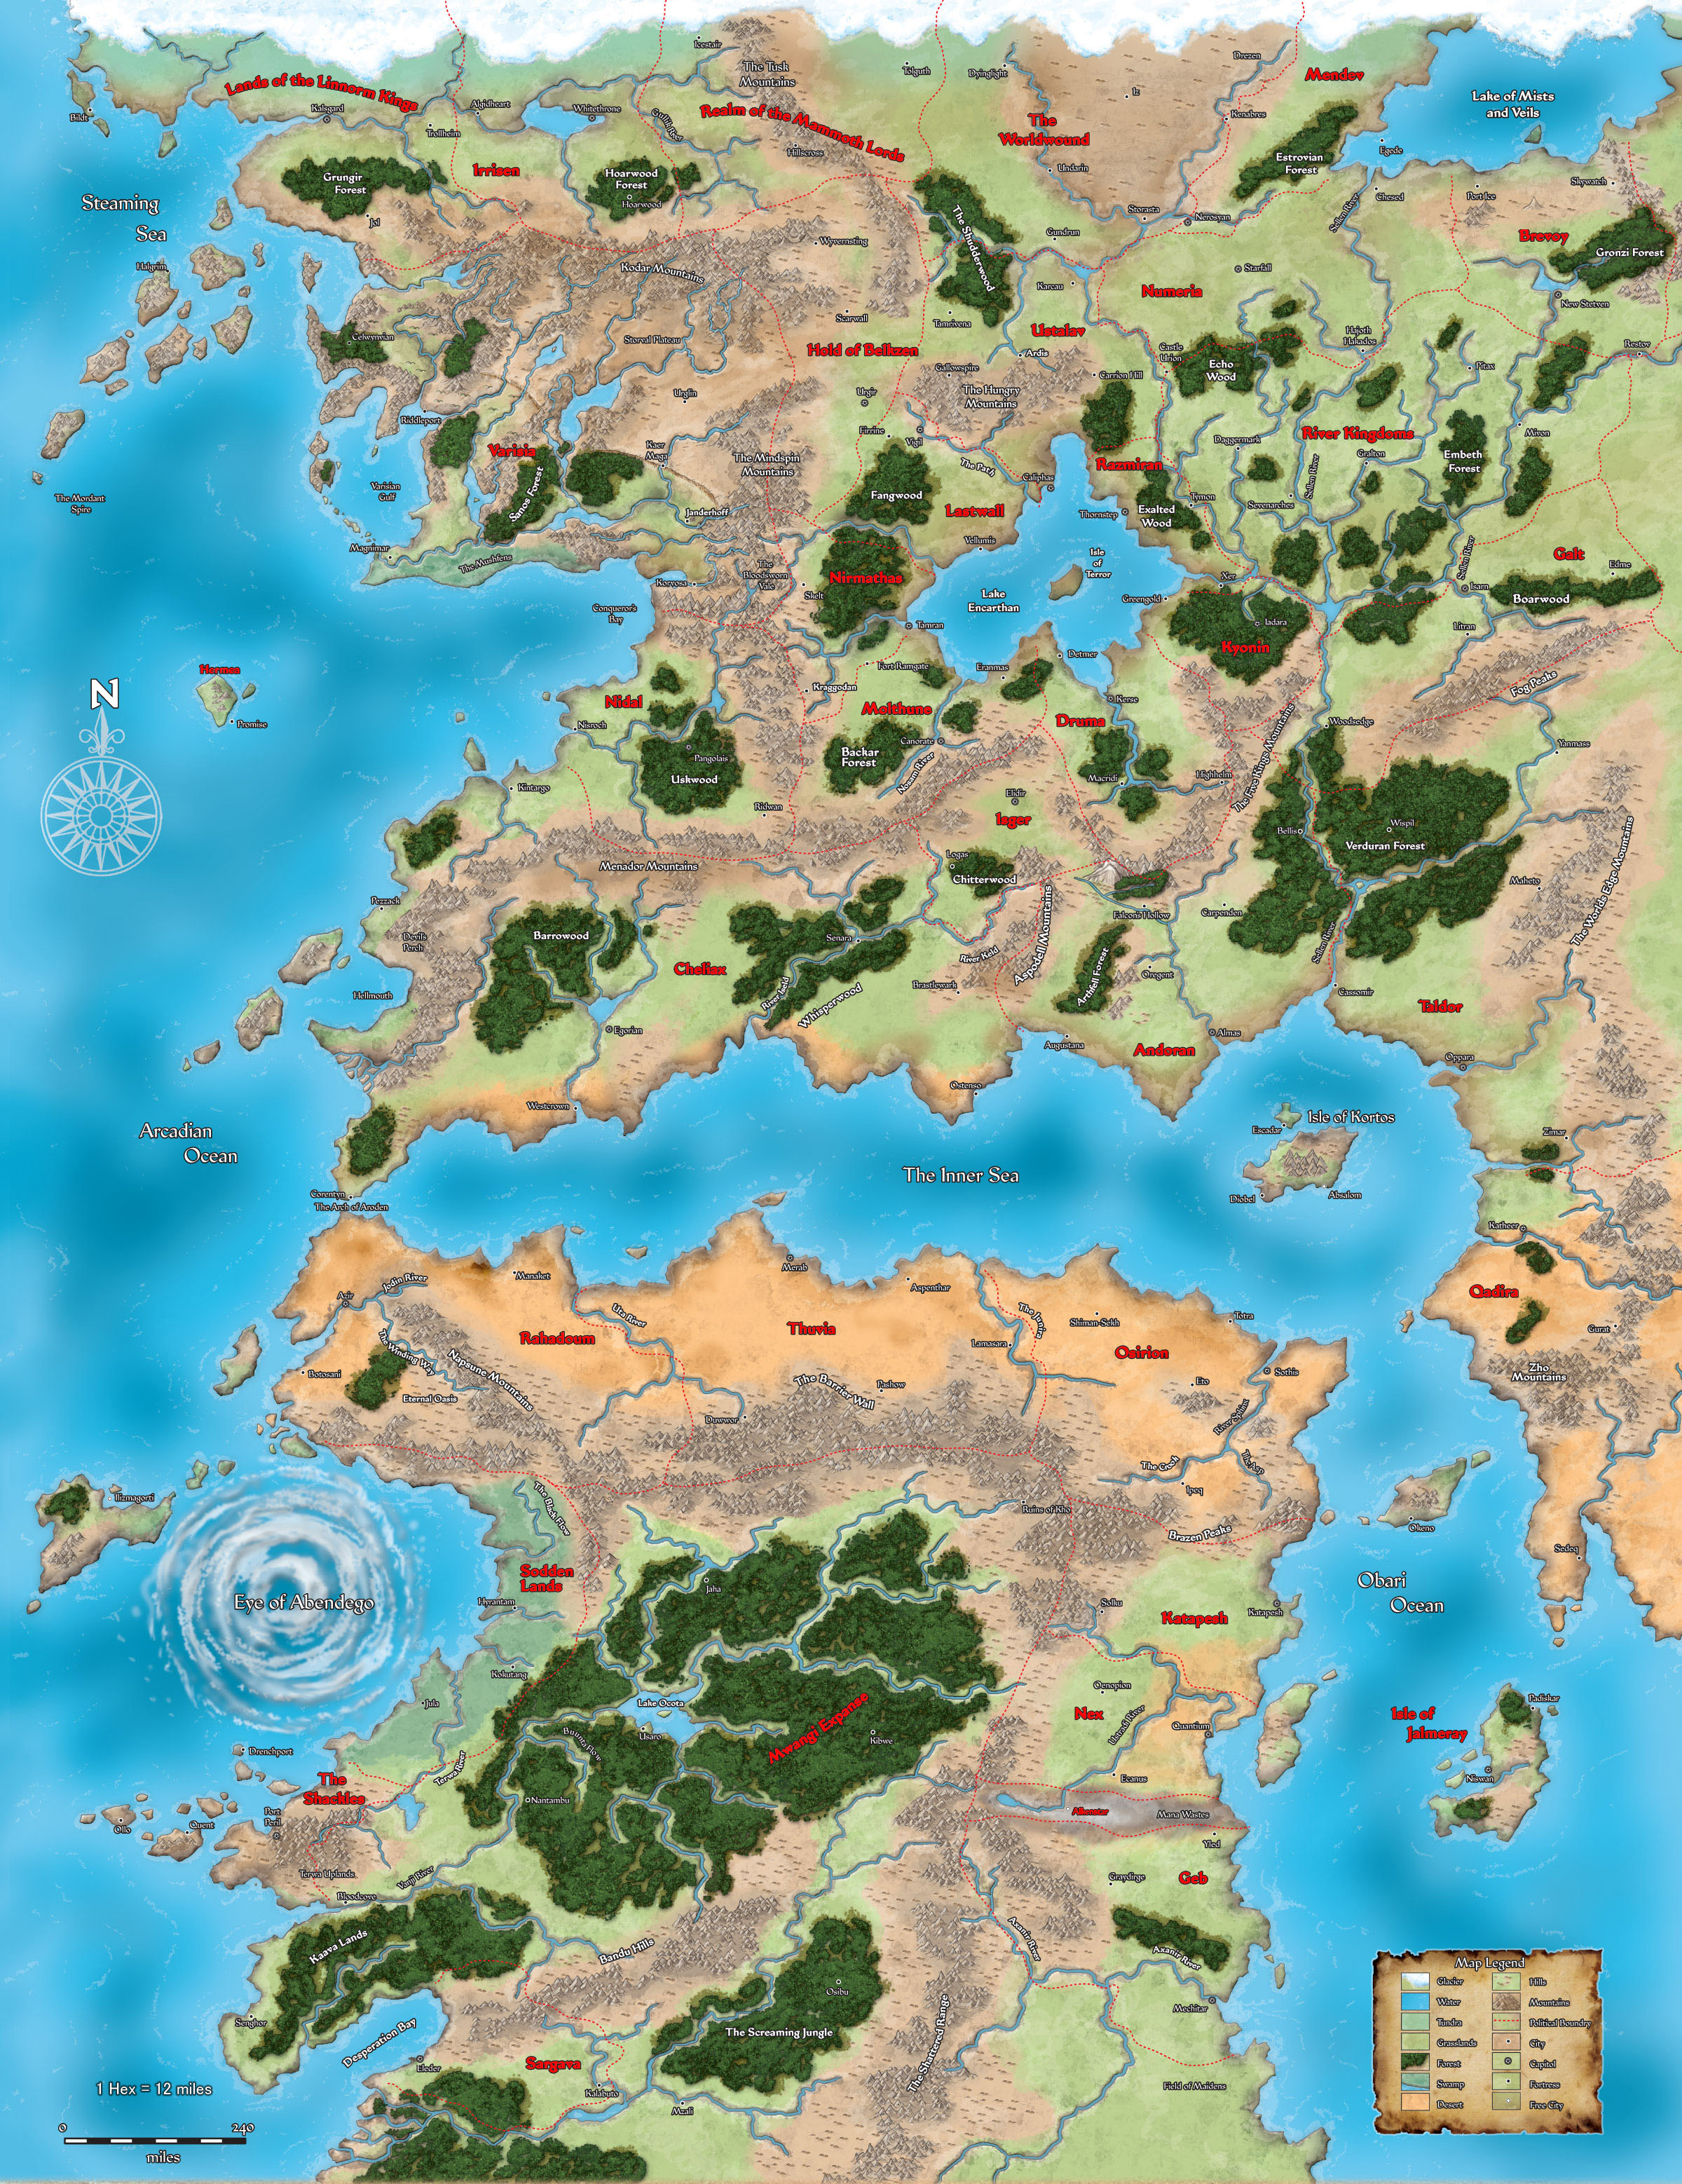 Golarion world map kings of kings golarion map 2400g gumiabroncs Image collections